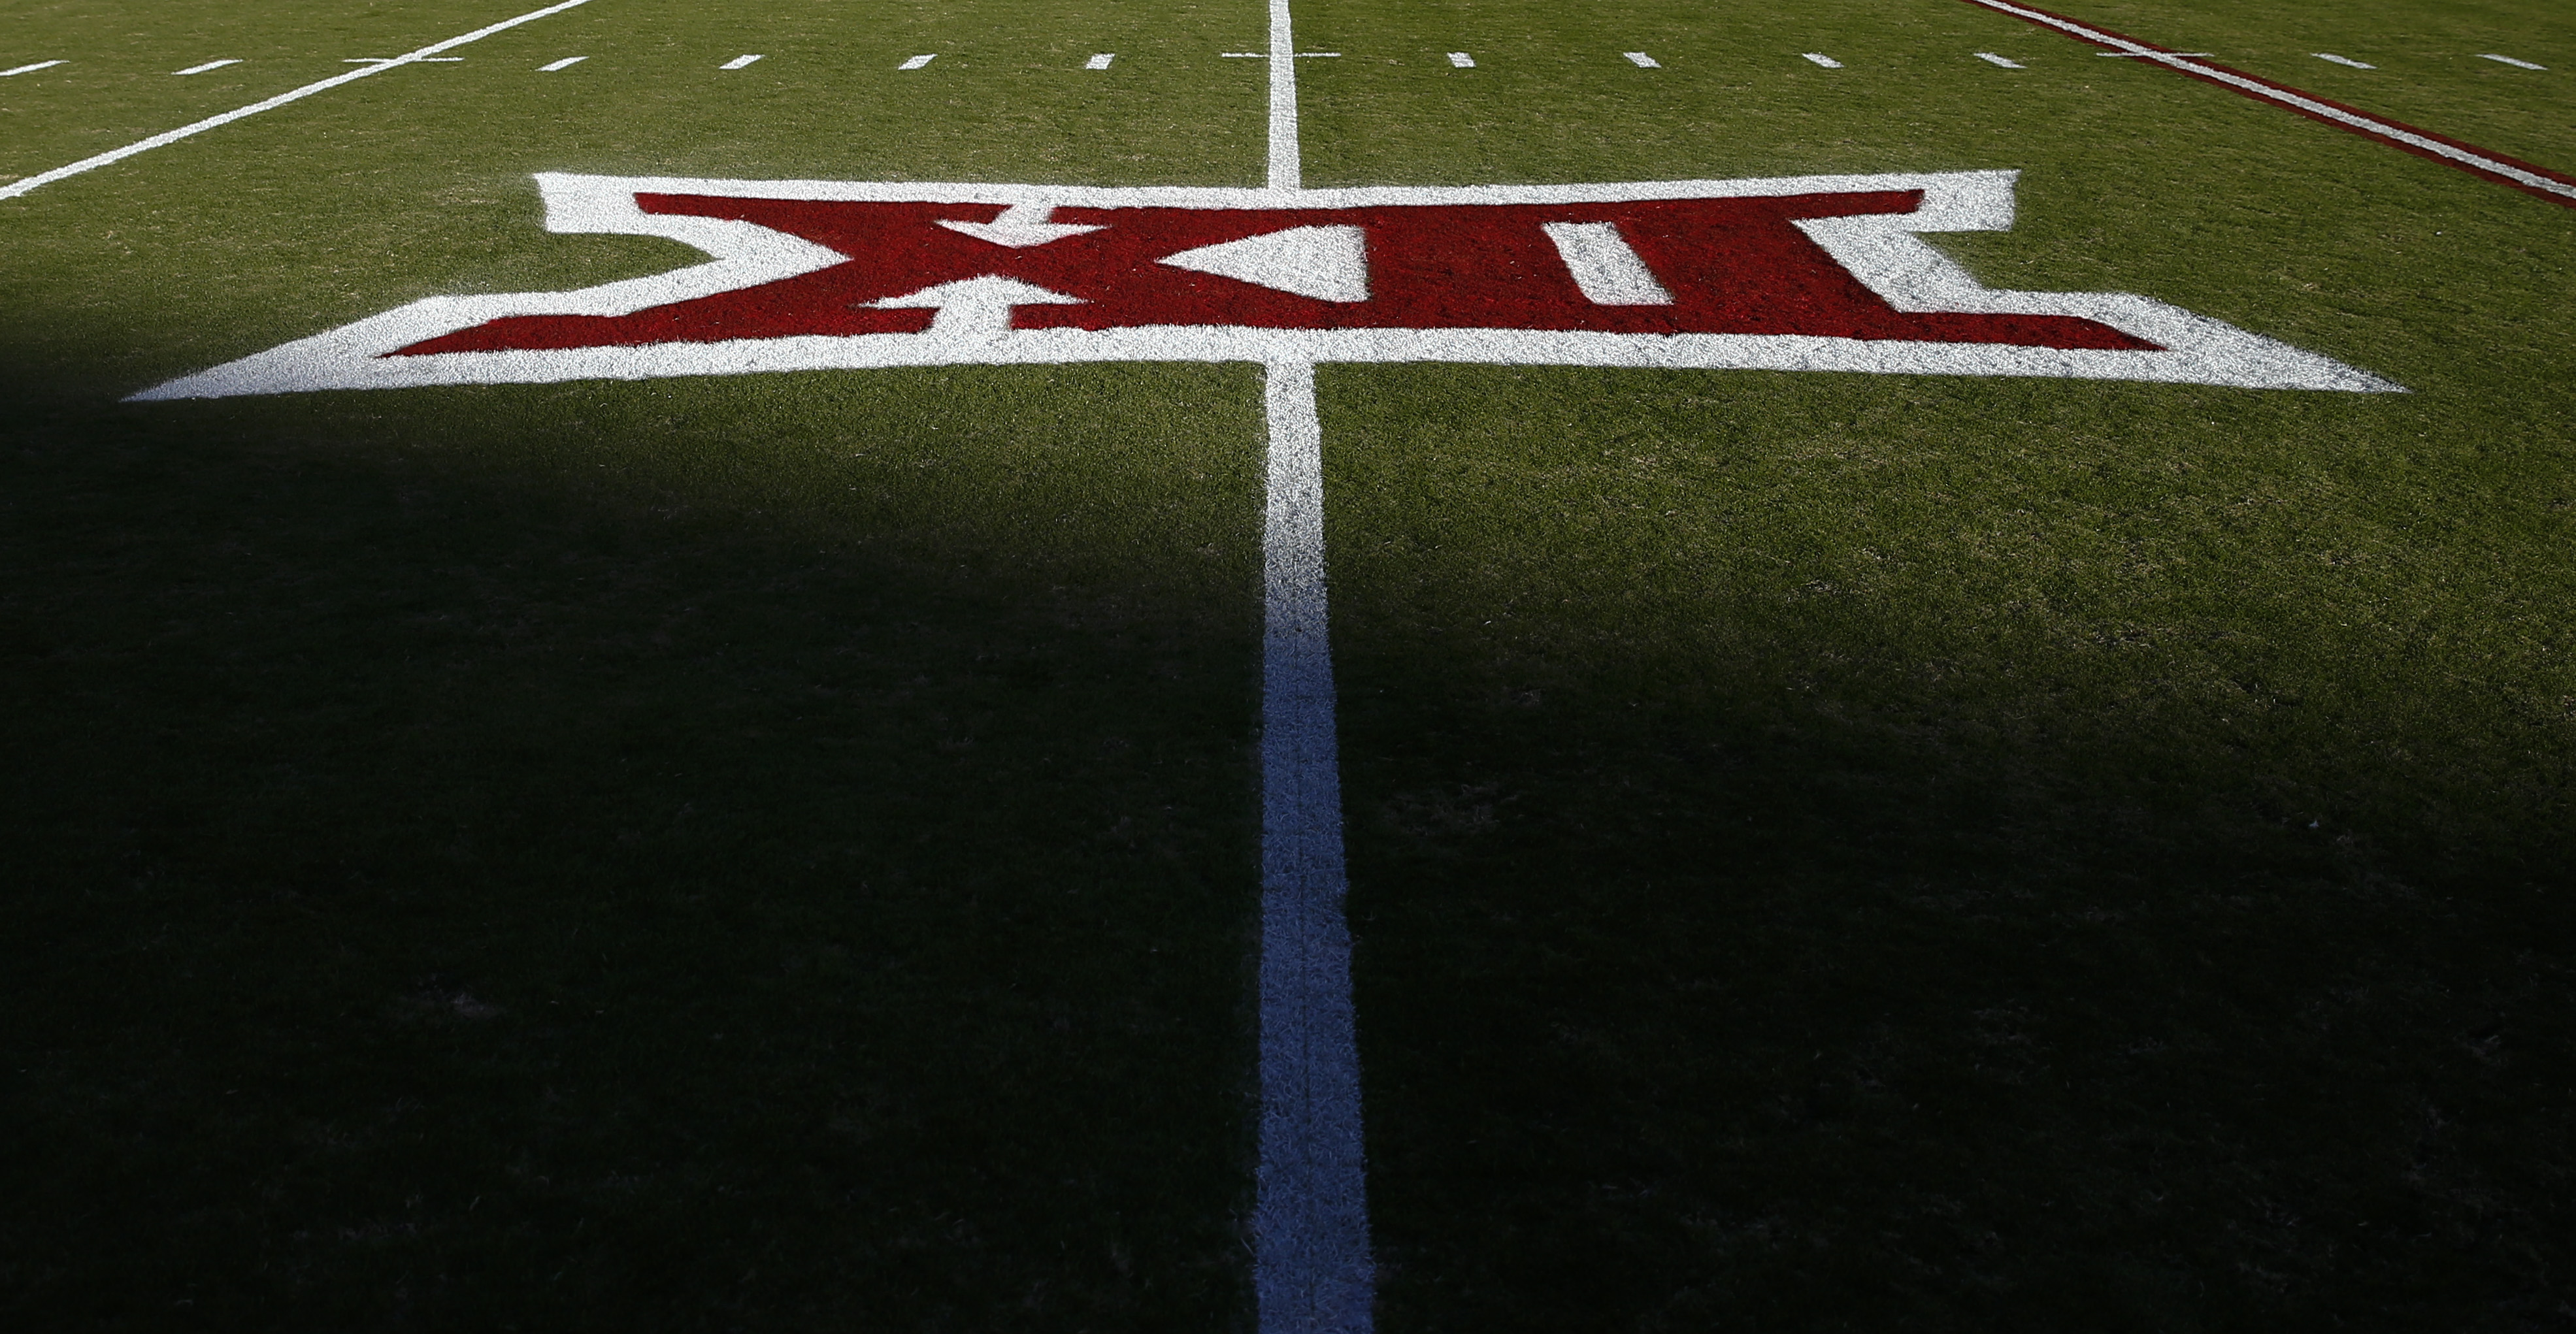 8948662-ncaa-football-texas-christian-at-oklahoma